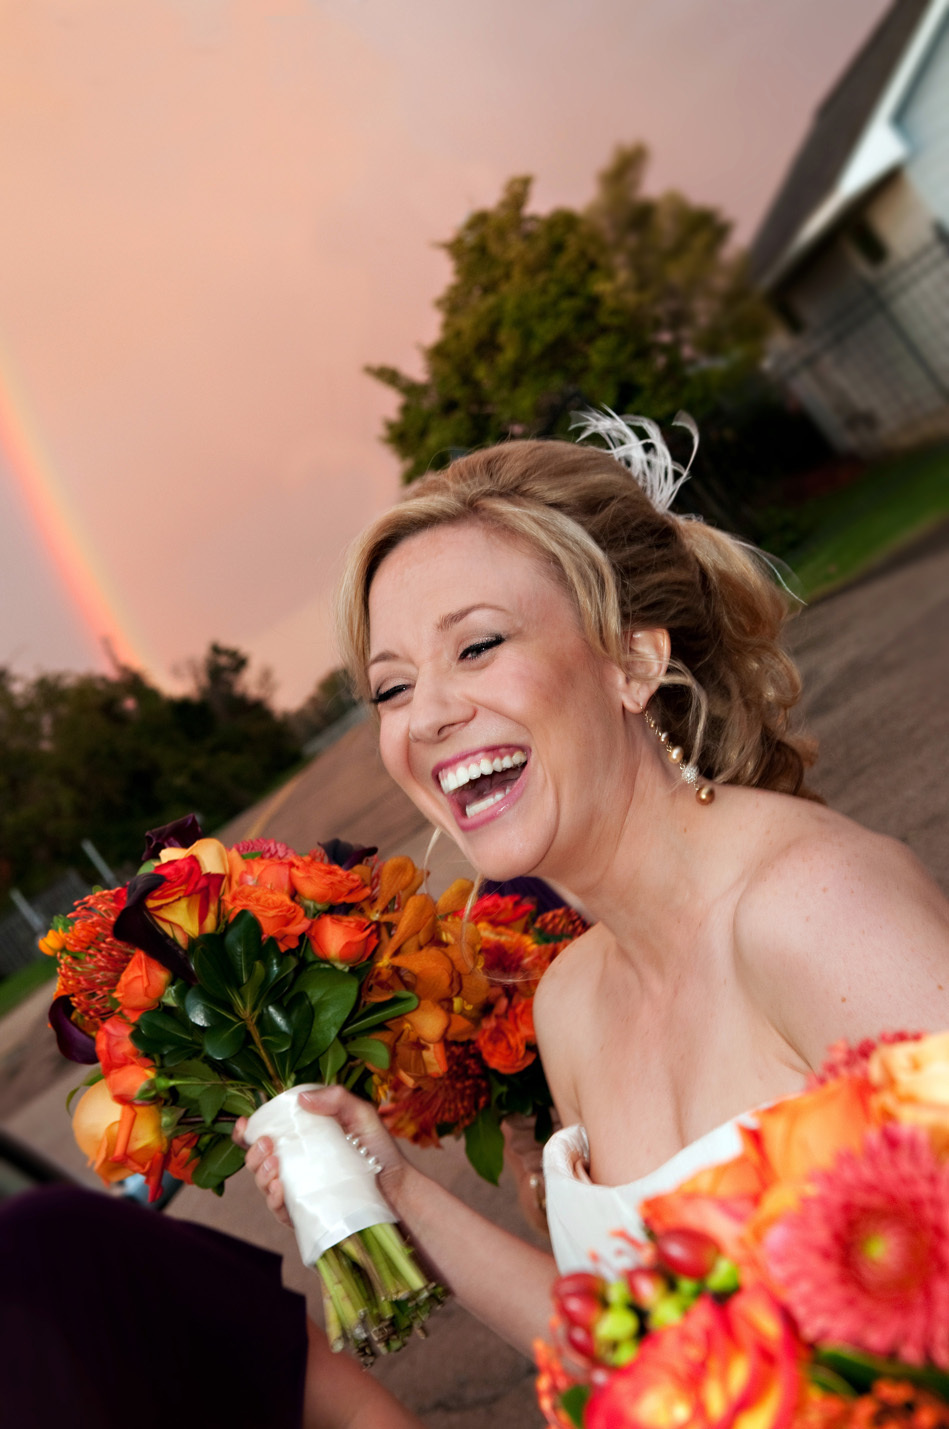 Bride_20laugh_20bright_20bouquet_20288k.original.full